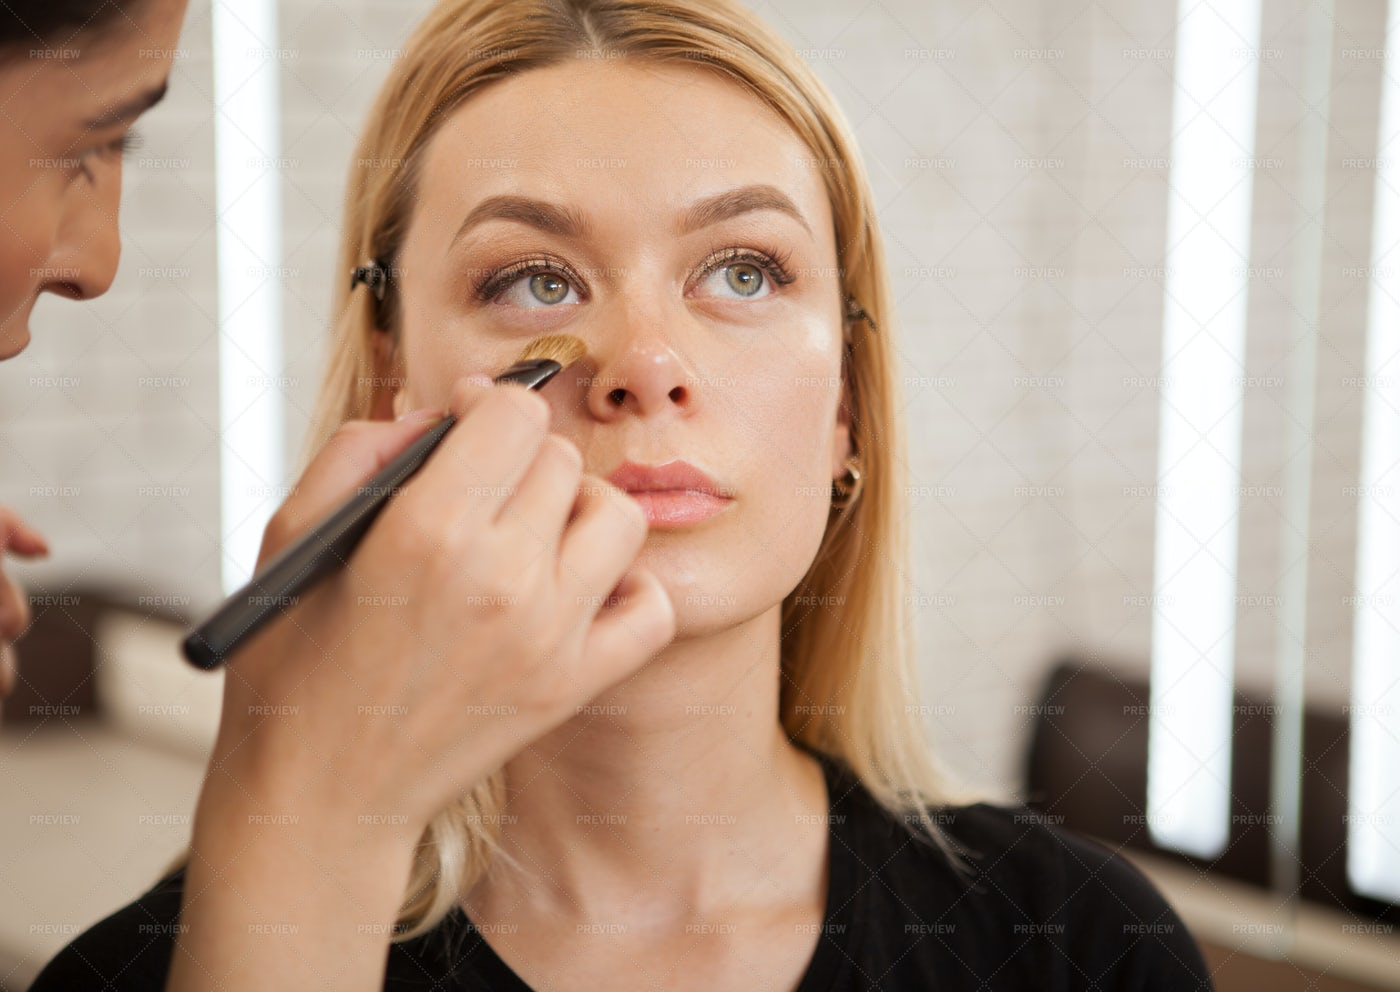 Getting Made Up Professionally: Stock Photos